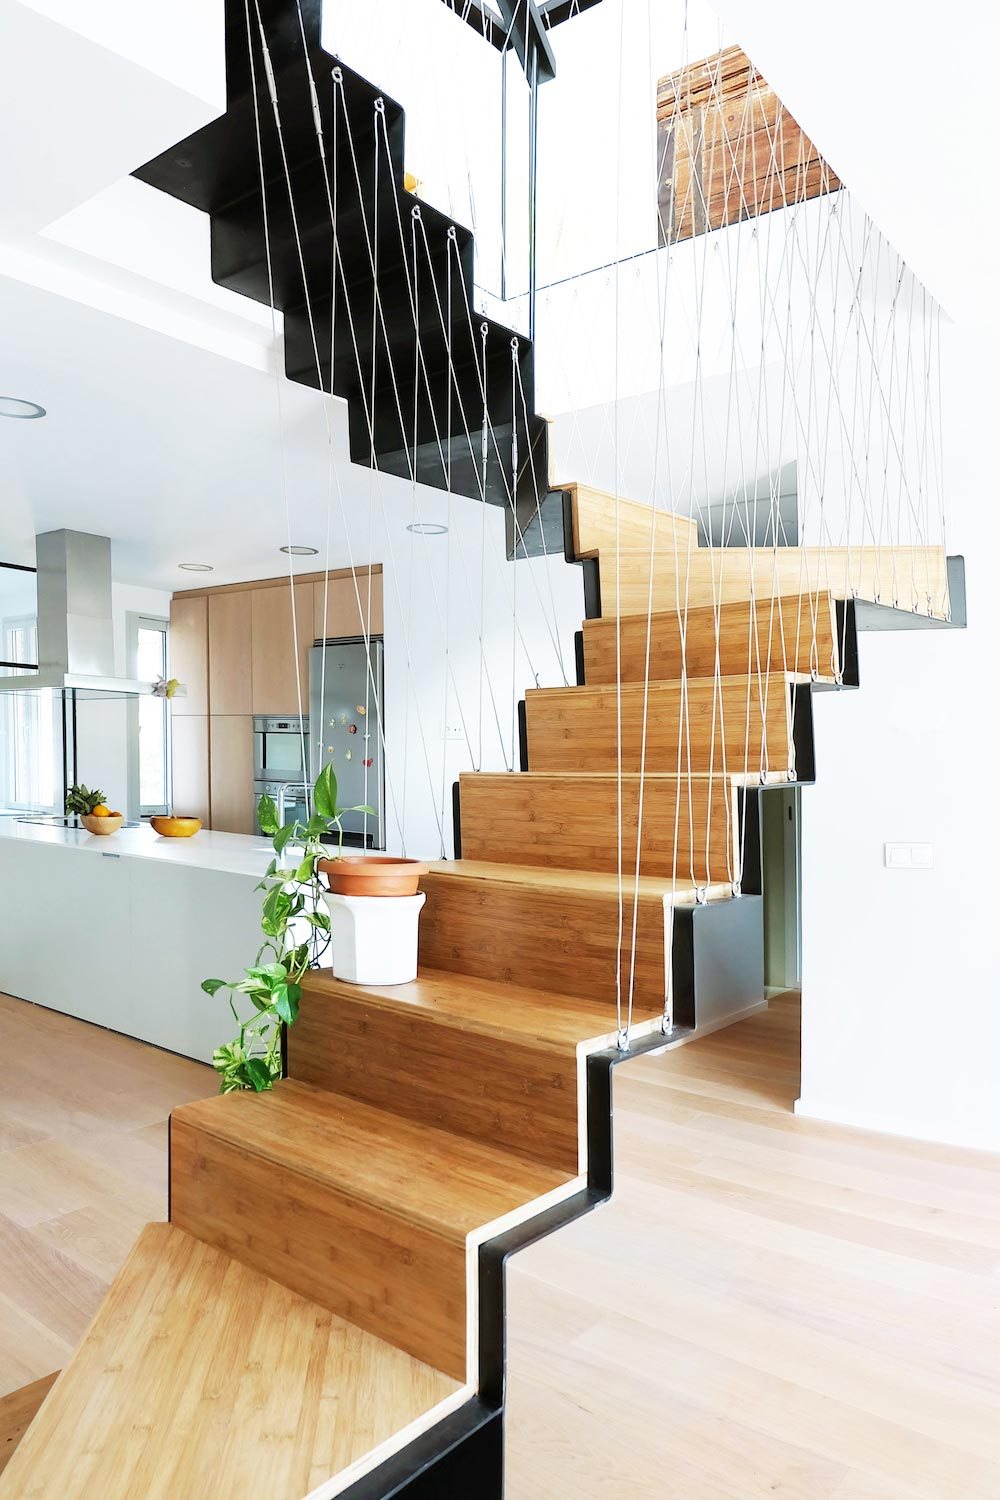 Contemporary Bright duplex in Madrid's city center by Marta Badiola + Jorge Pizarro